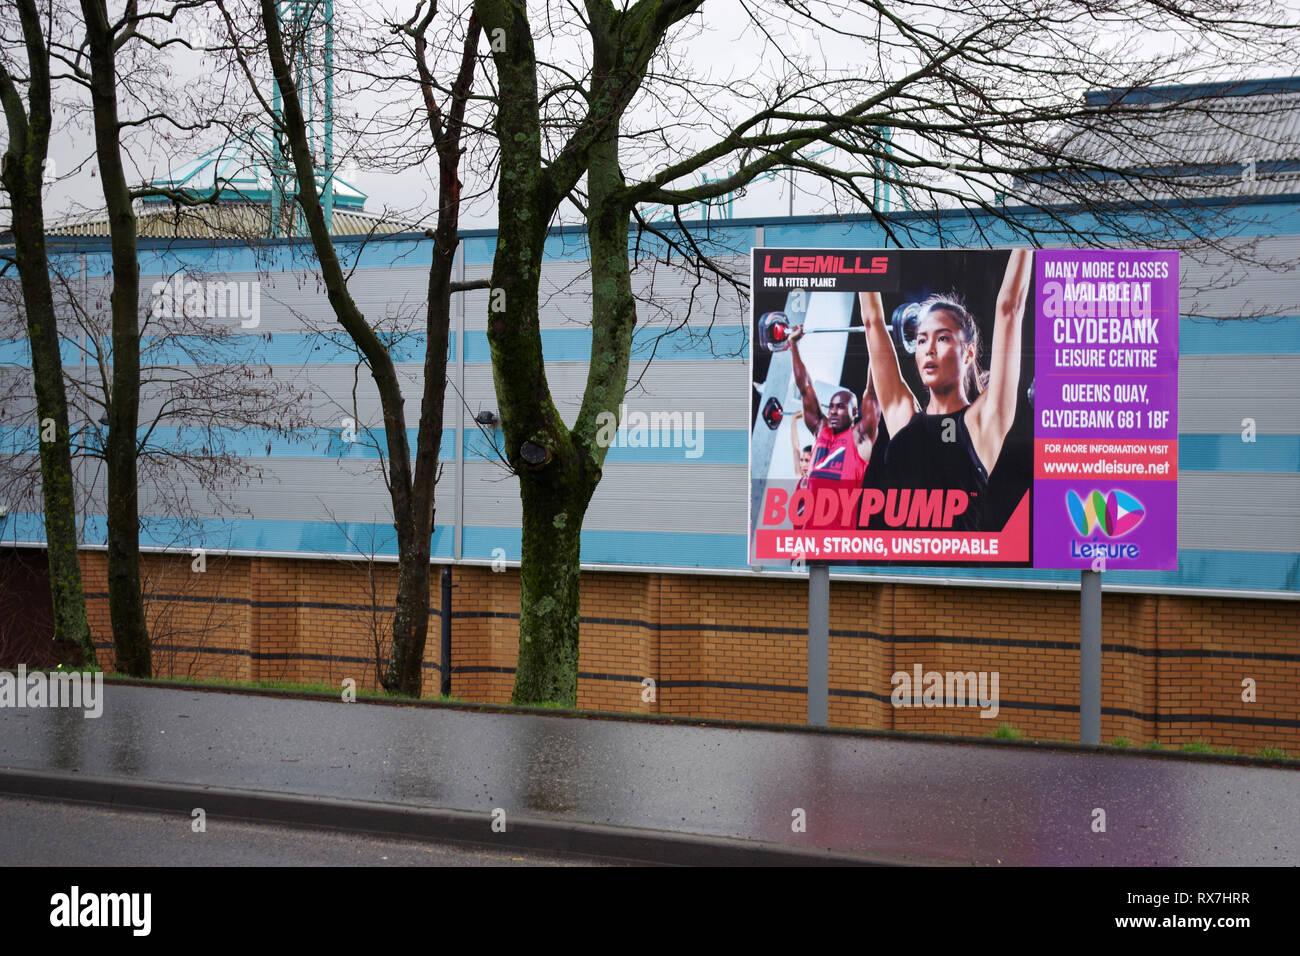 Clydebank Leisure Centre billboards - Stock Image